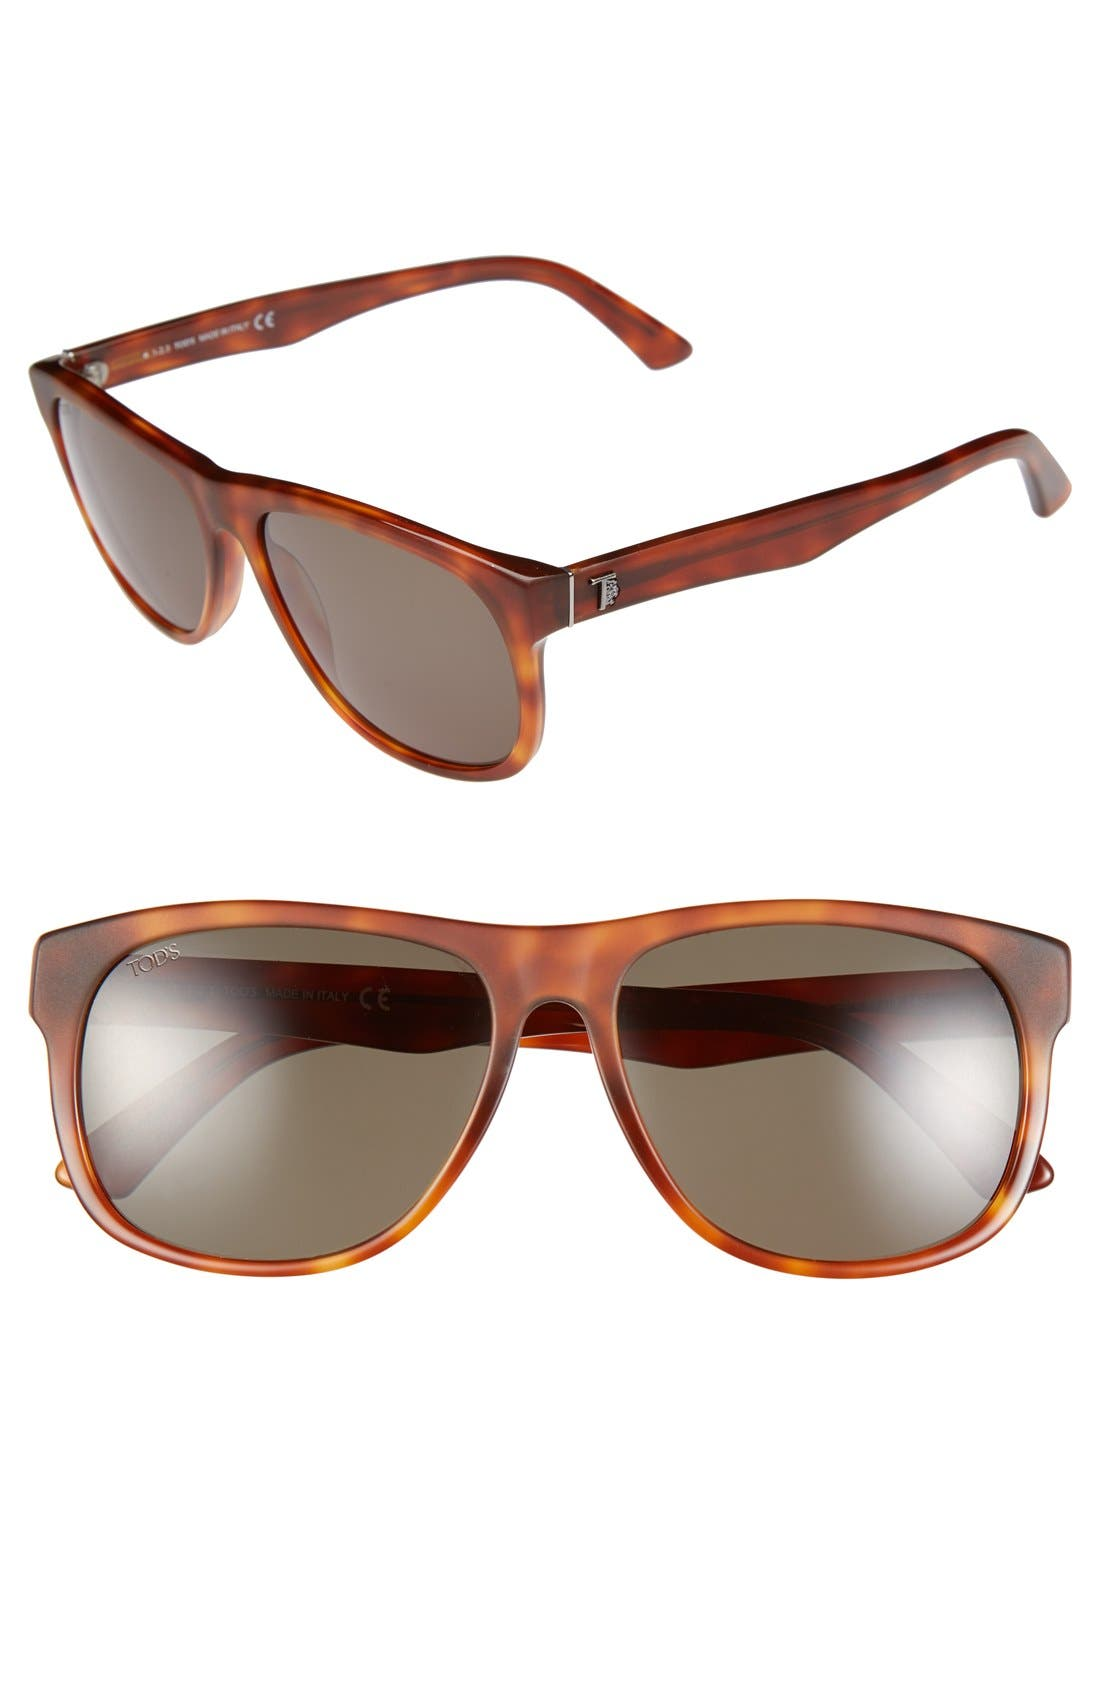 Main Image - Tod's 58mm Retro Sunglasses